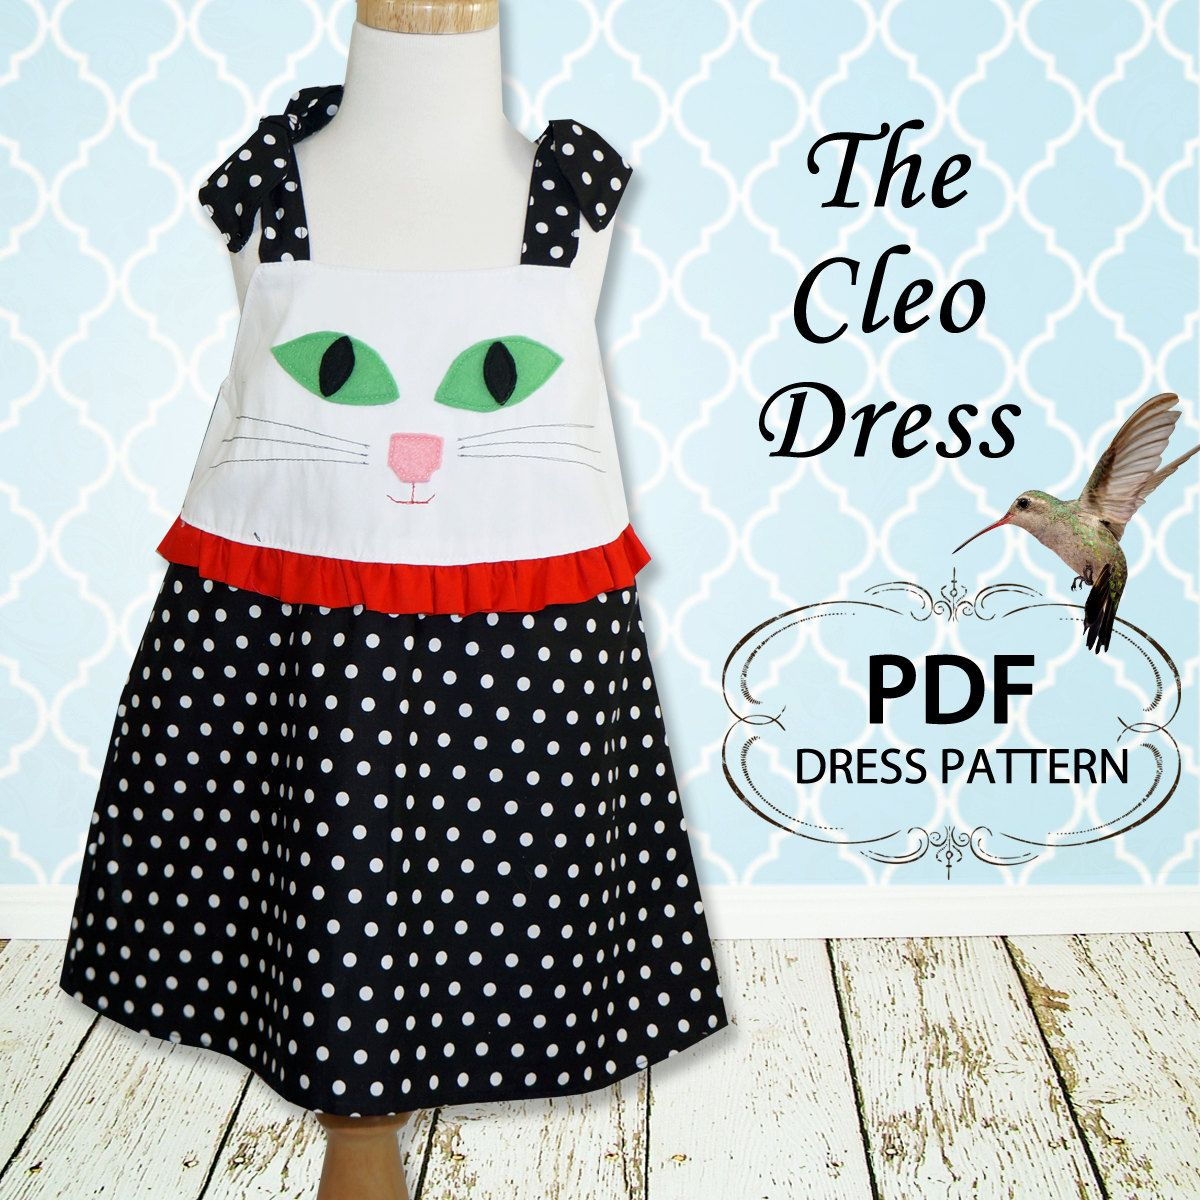 Childrens sewing pattern pdf girls dress pattern children kids childrens sewing pattern pdf girls dress pattern children kids baby childrens clothing jeuxipadfo Images